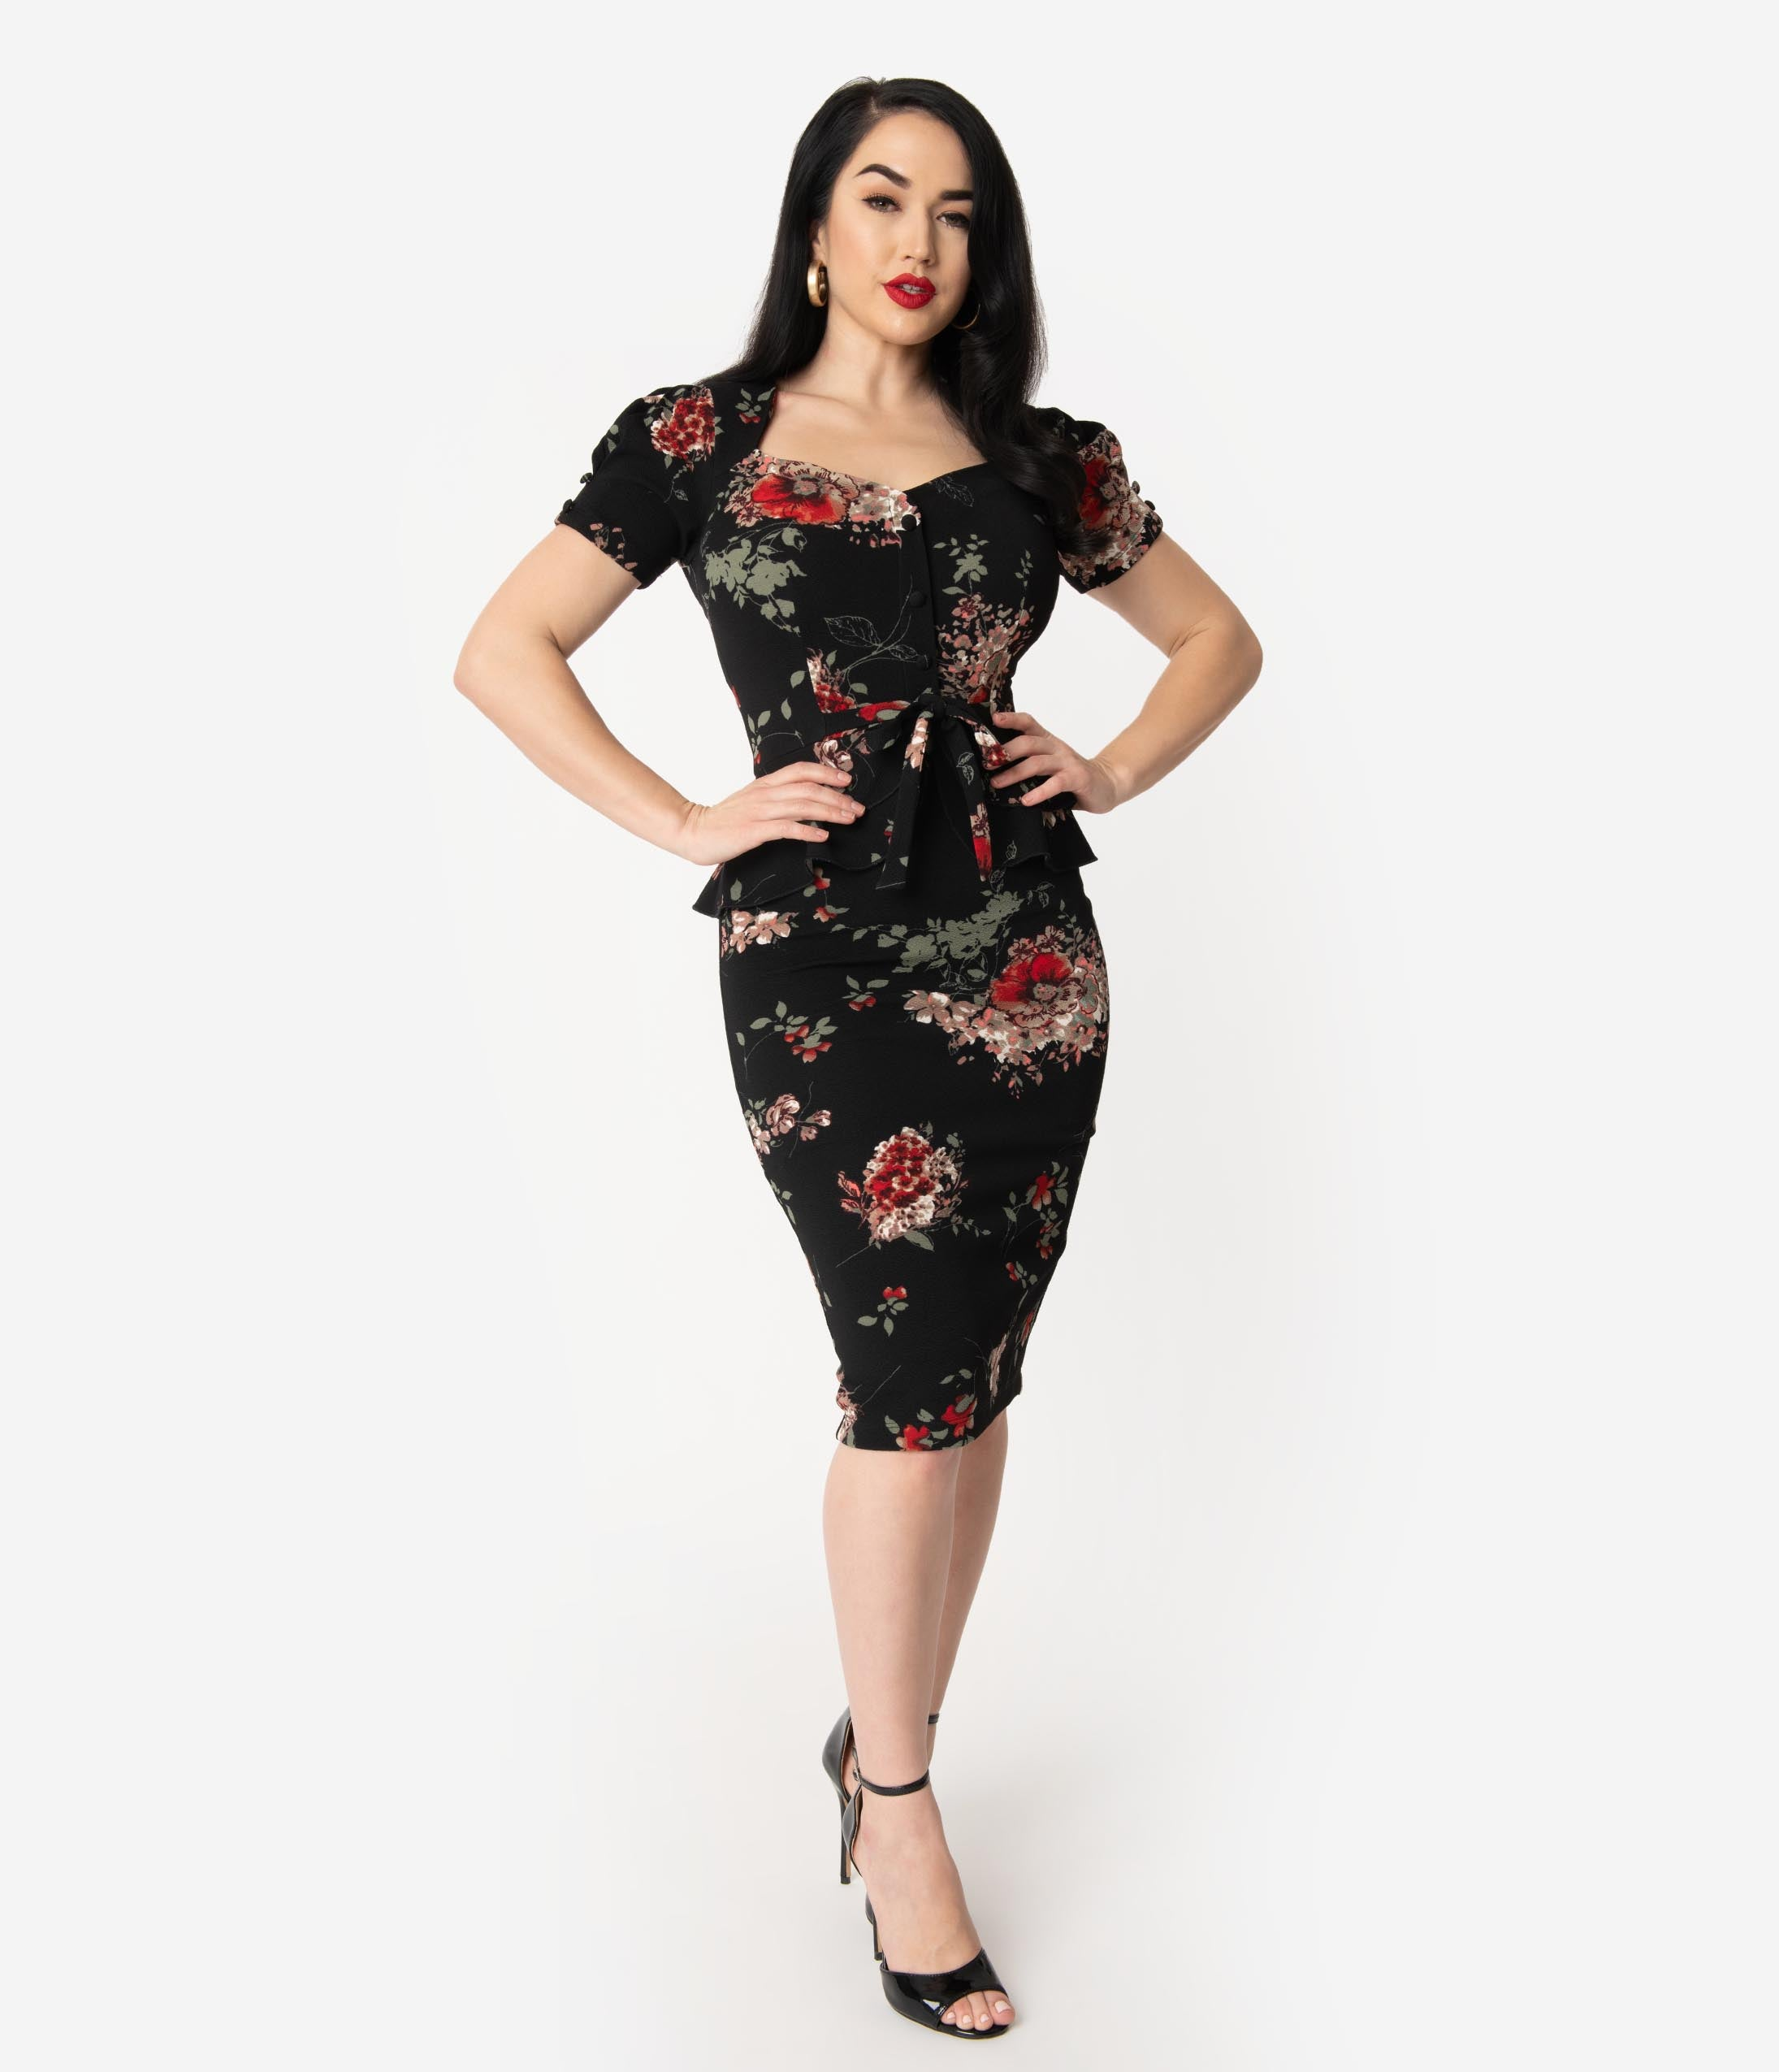 Authentic Natural 1950s Makeup History and Tutorial Stop Staring 1950S Black Floral Peplum Stretch Vital Wiggle Dress $188.00 AT vintagedancer.com